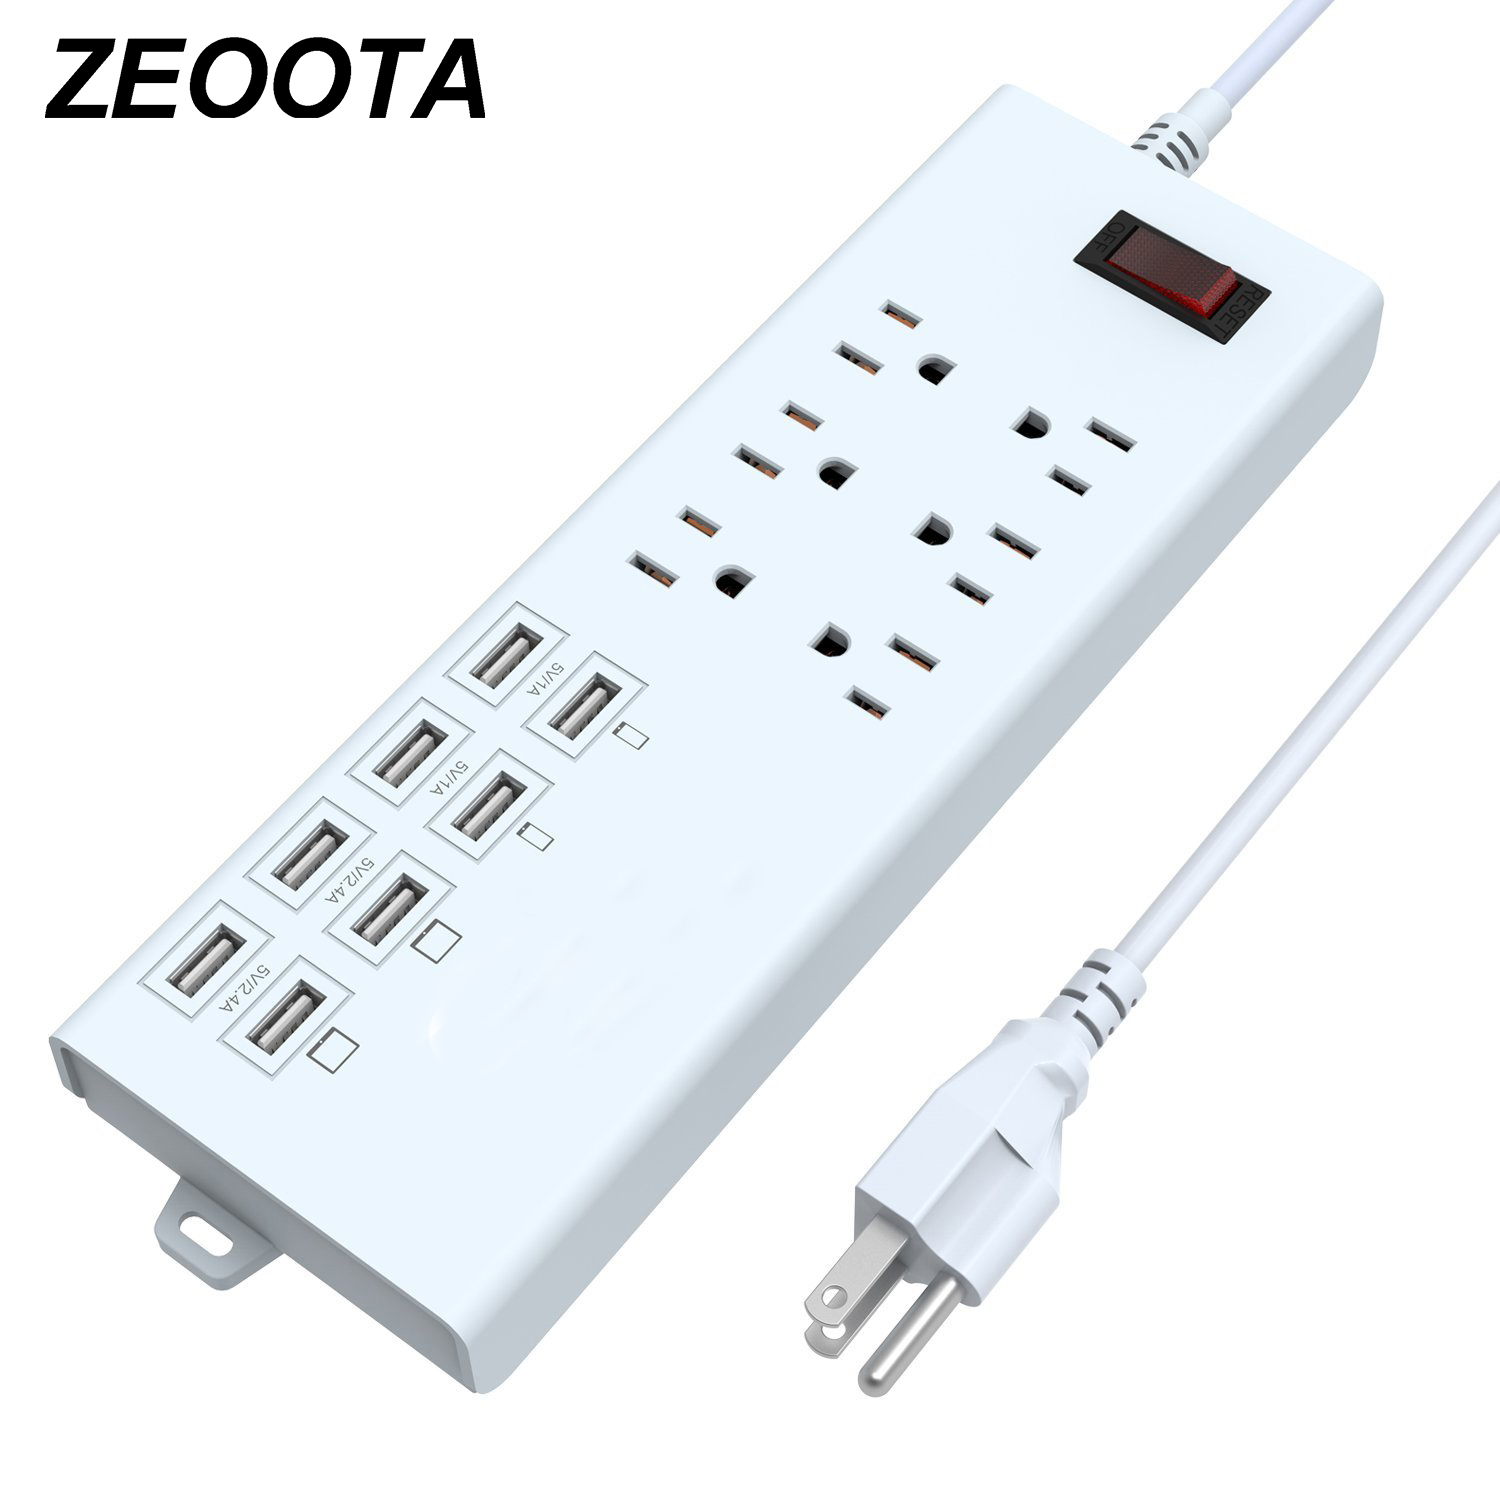 Power Strip USB Outlets Travel Adapter 1625W/10A Surge Protector 6 AC US Outlets Plug Socket with USB 8Ports 5ft Extension Cord standard grounding tower extension socket ac 10a multi universal socket 12 outlets with overload protector and portable handle